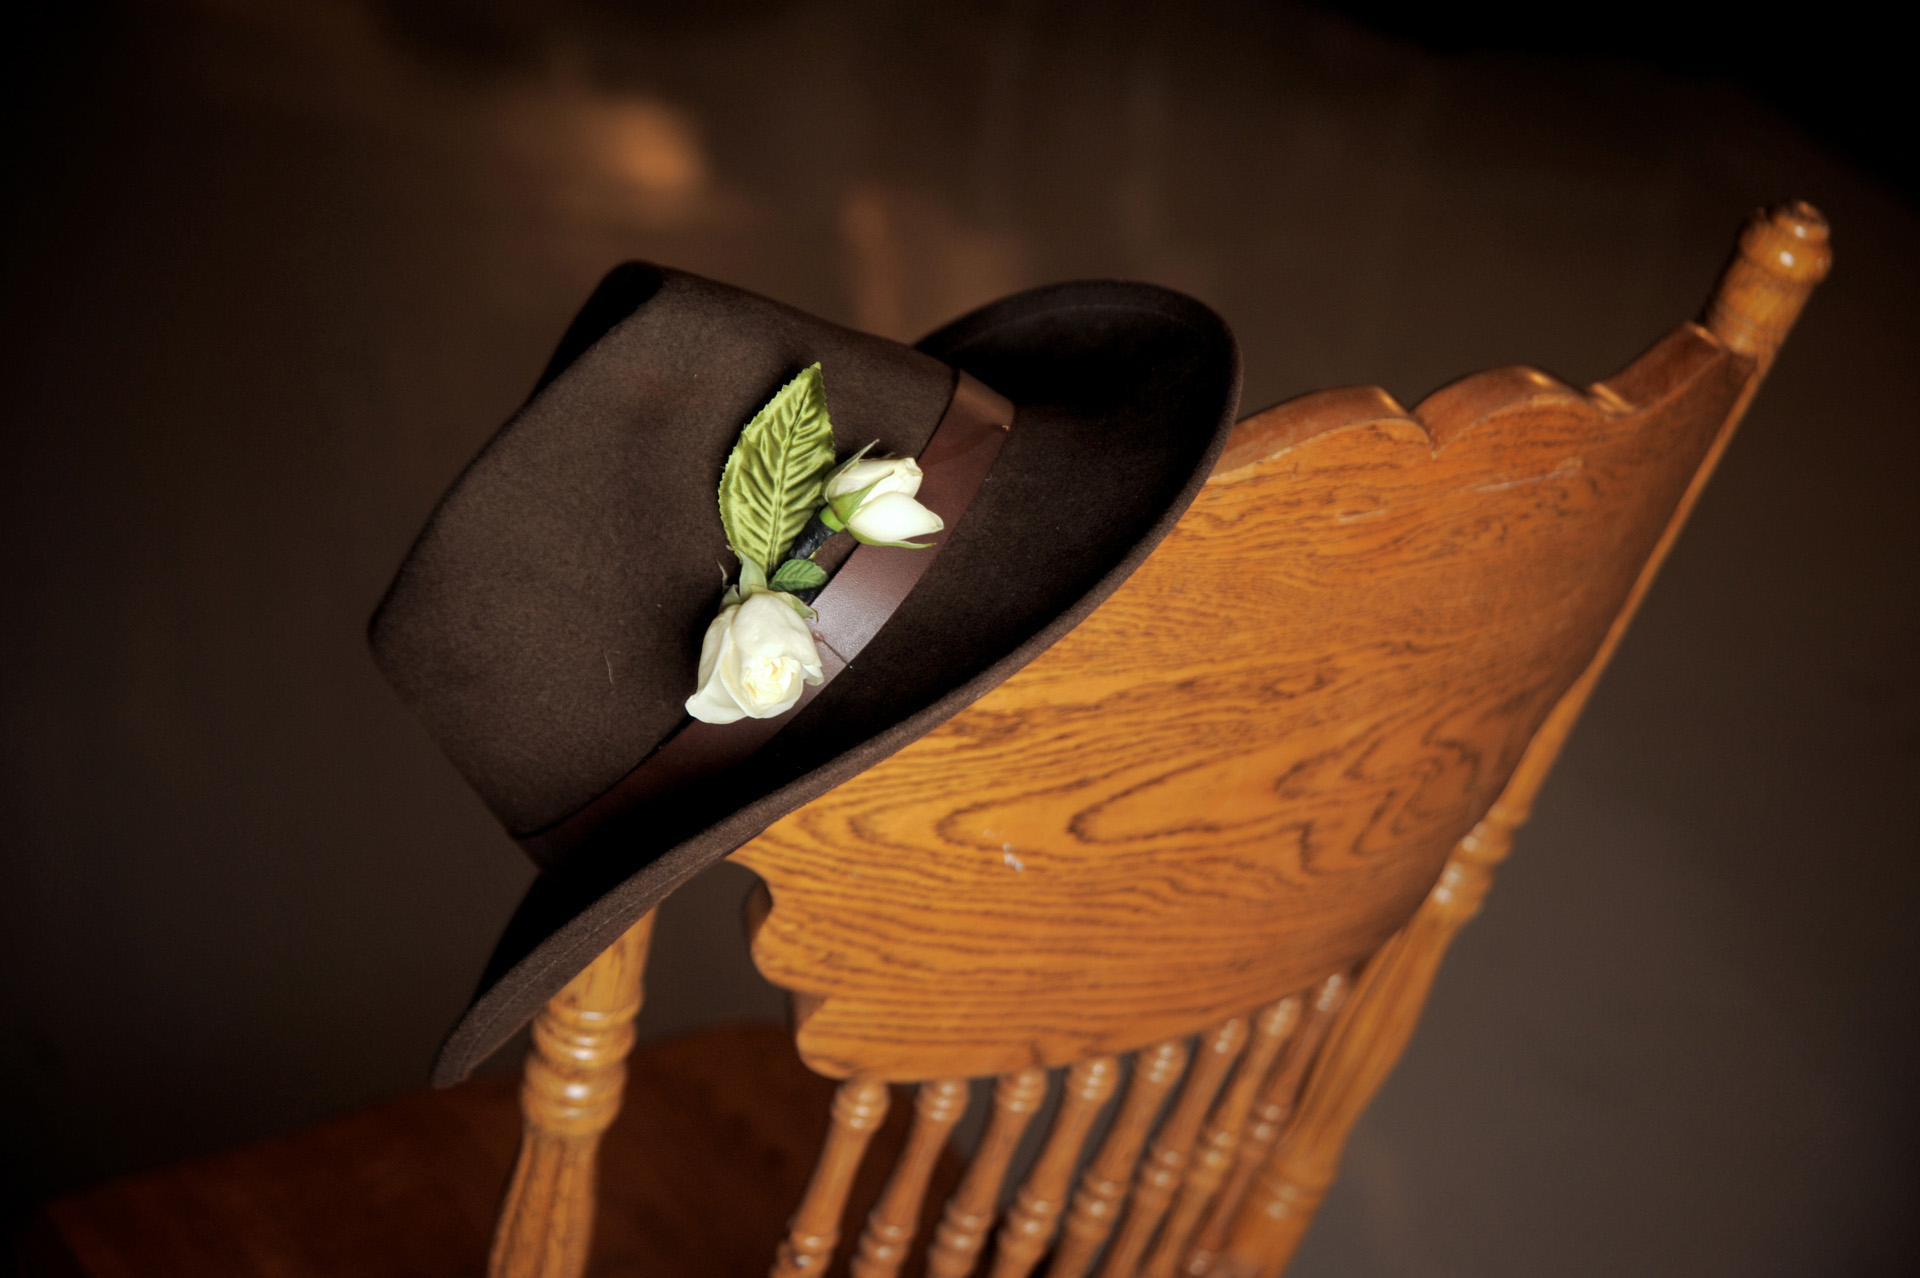 Michigan country wedding wedding photographer's photo of a cowboy hat on a chair towards the end of the night at a Michigan country wedding.